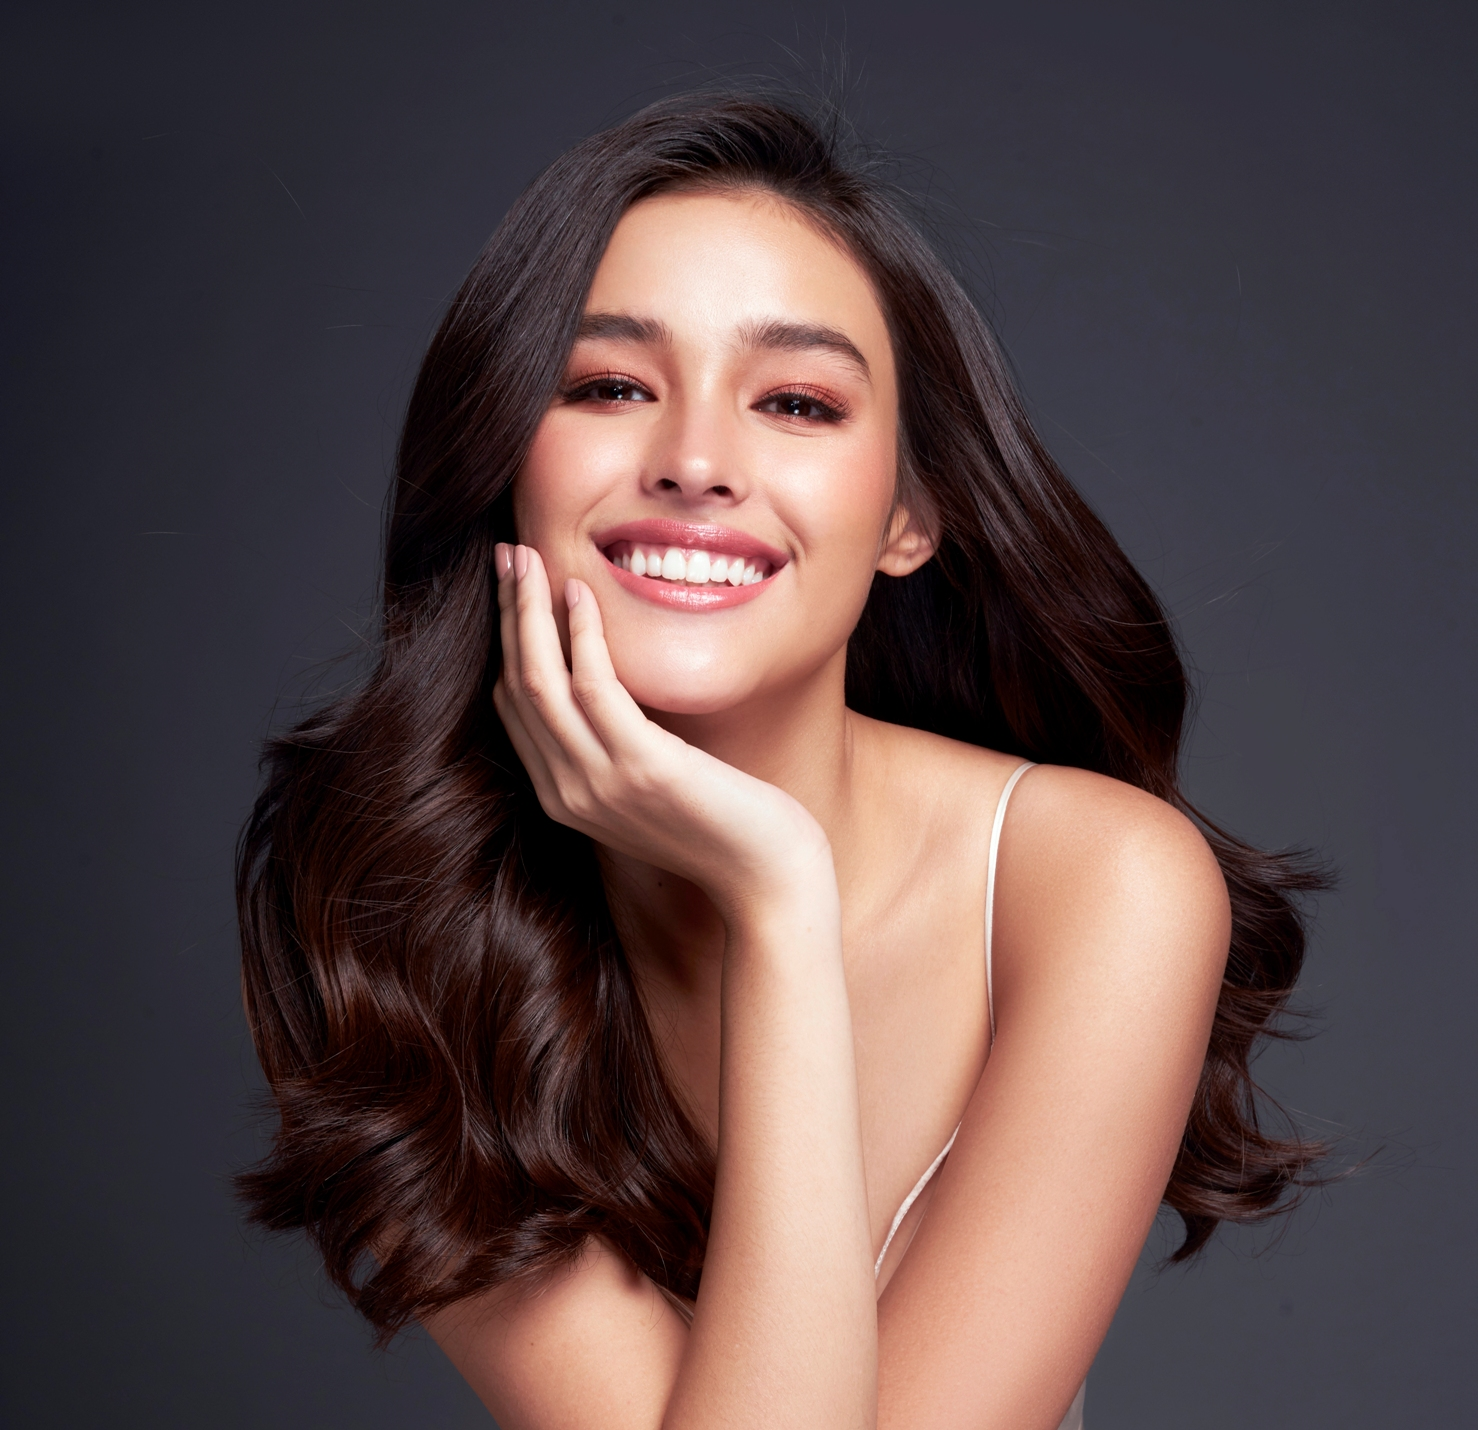 Liza Soberano (b. 1998) nudes (21 pictures) Fappening, YouTube, underwear